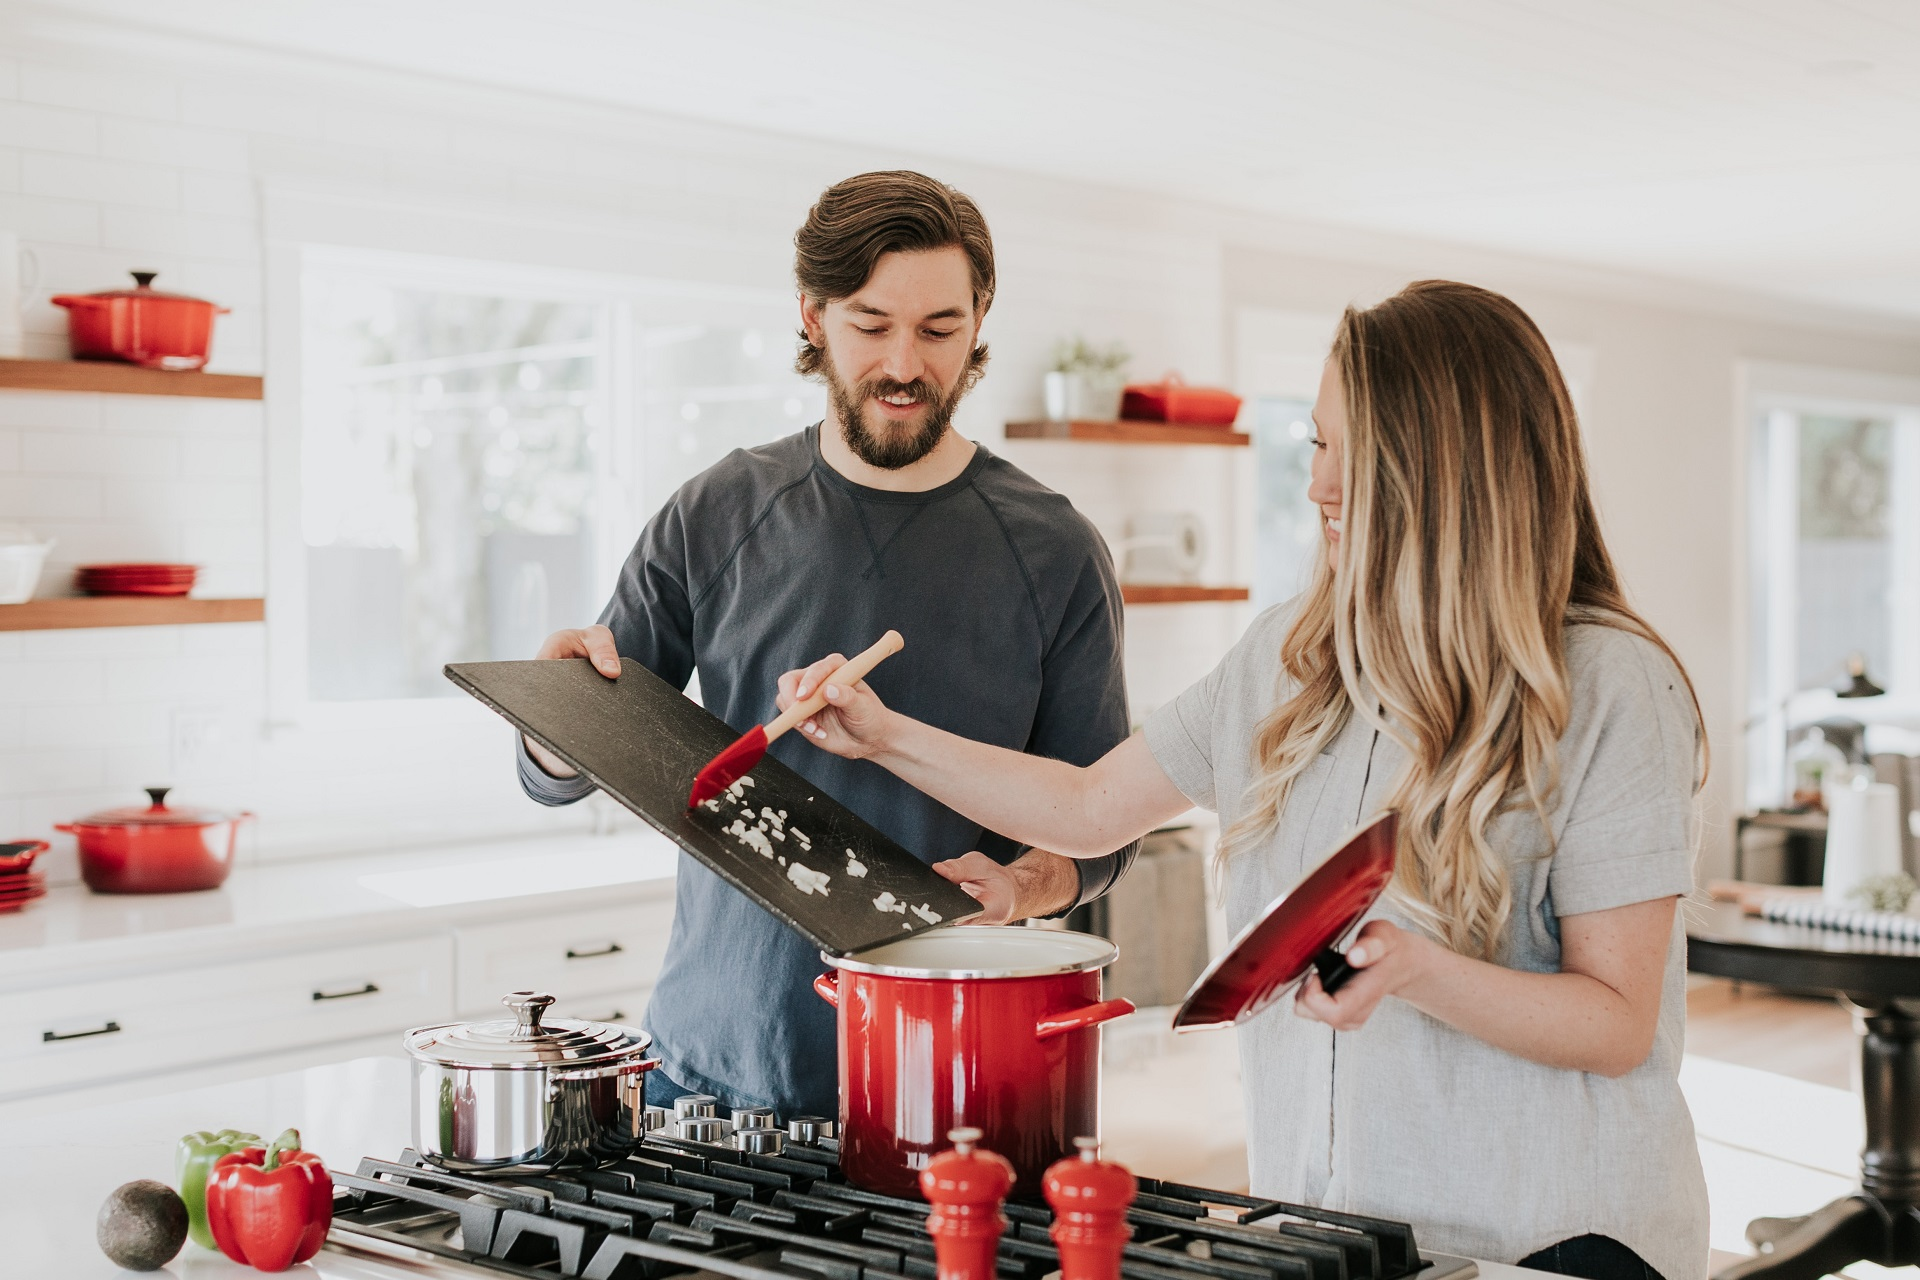 A man and a woman cooking together - Becca Tapert via Unsplash